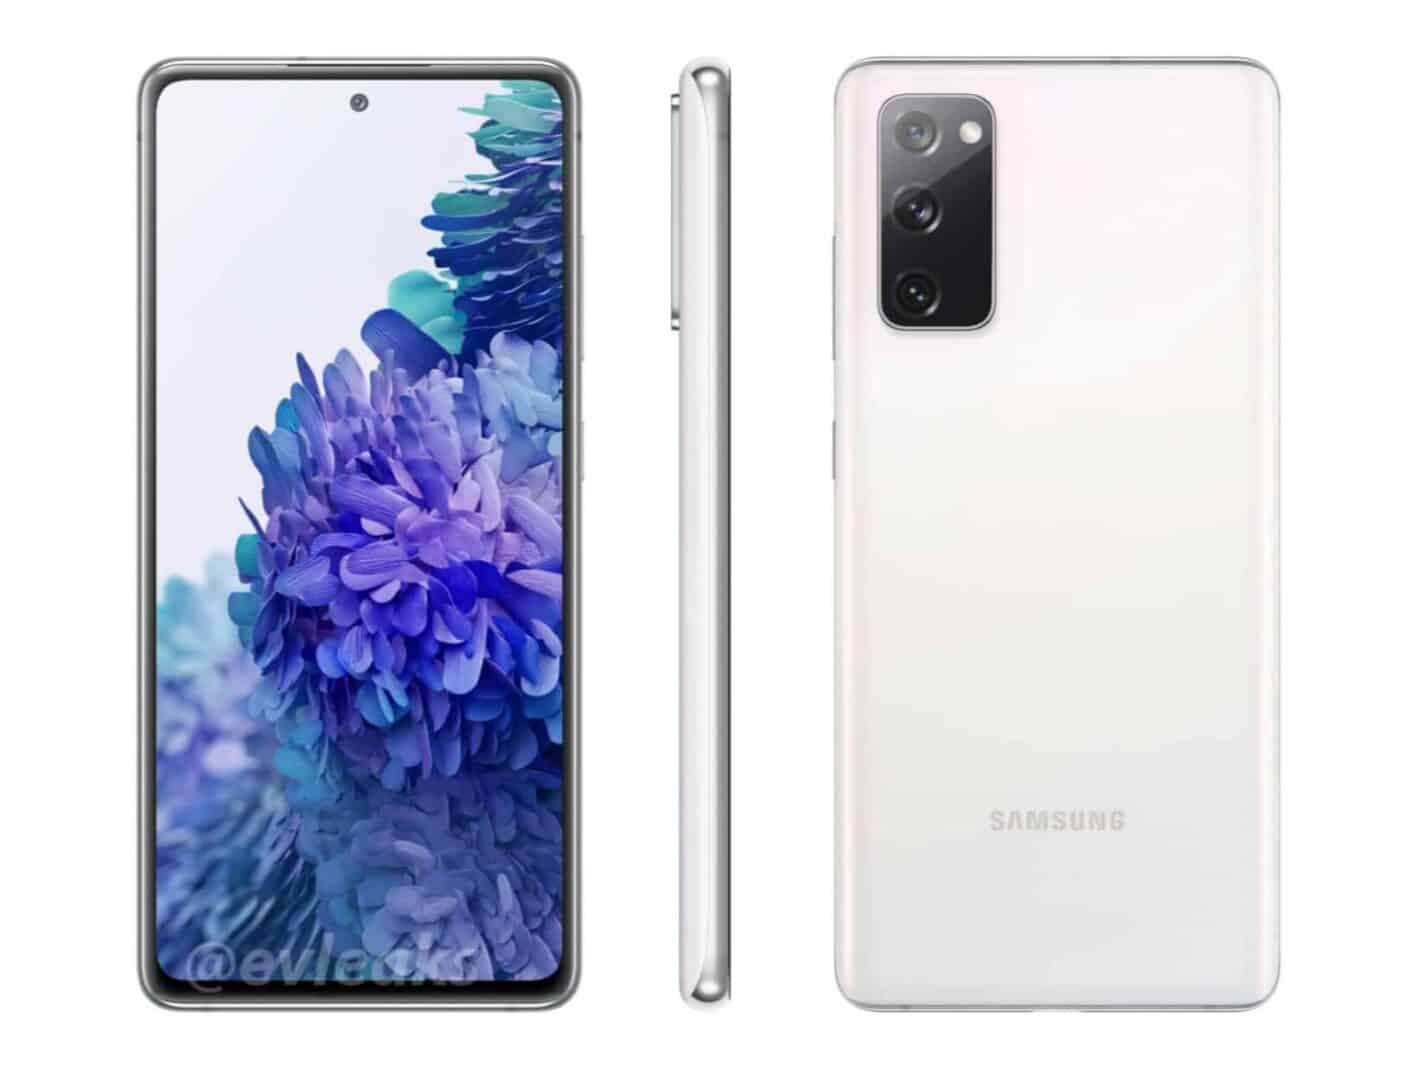 Samsung Galaxy S20 FE 5G color variant title crop